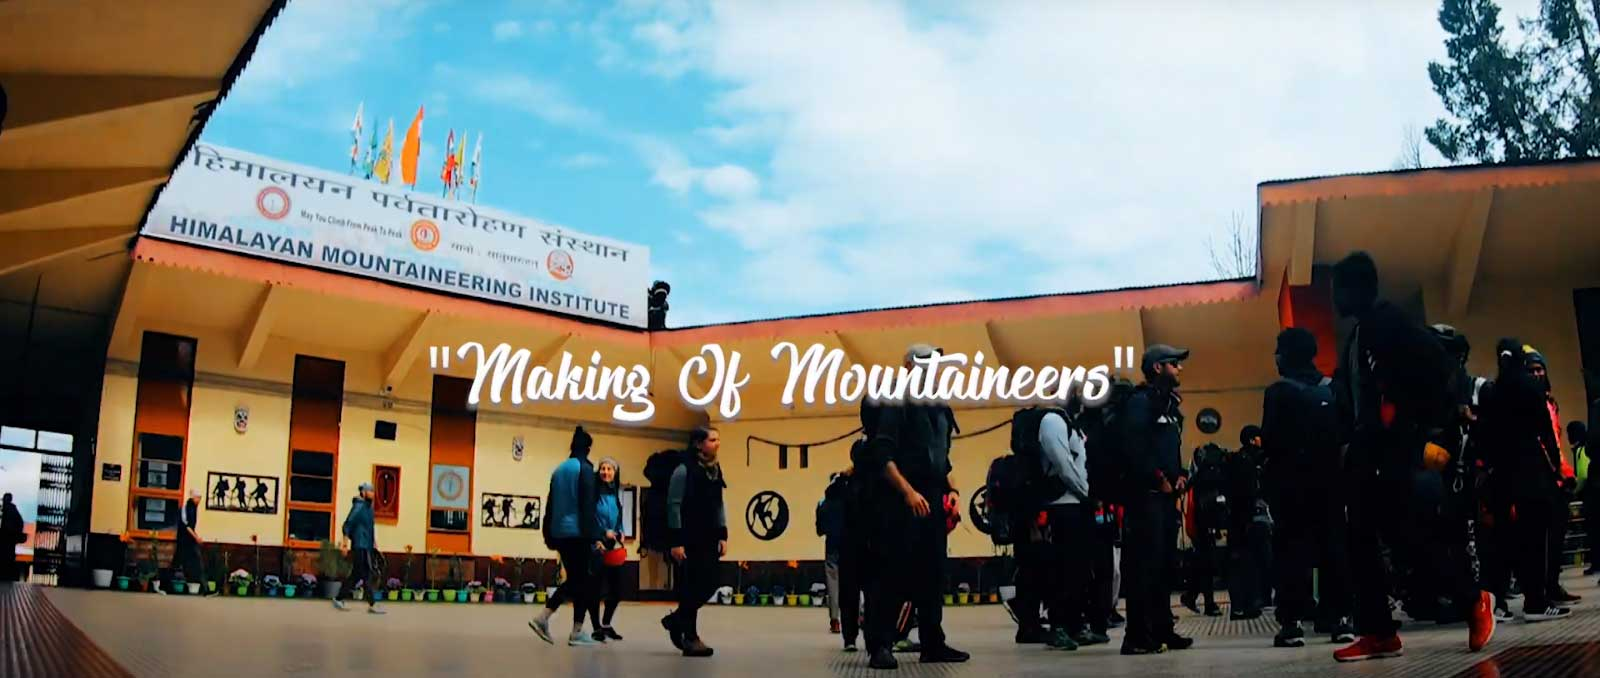 making-of-mountaineers